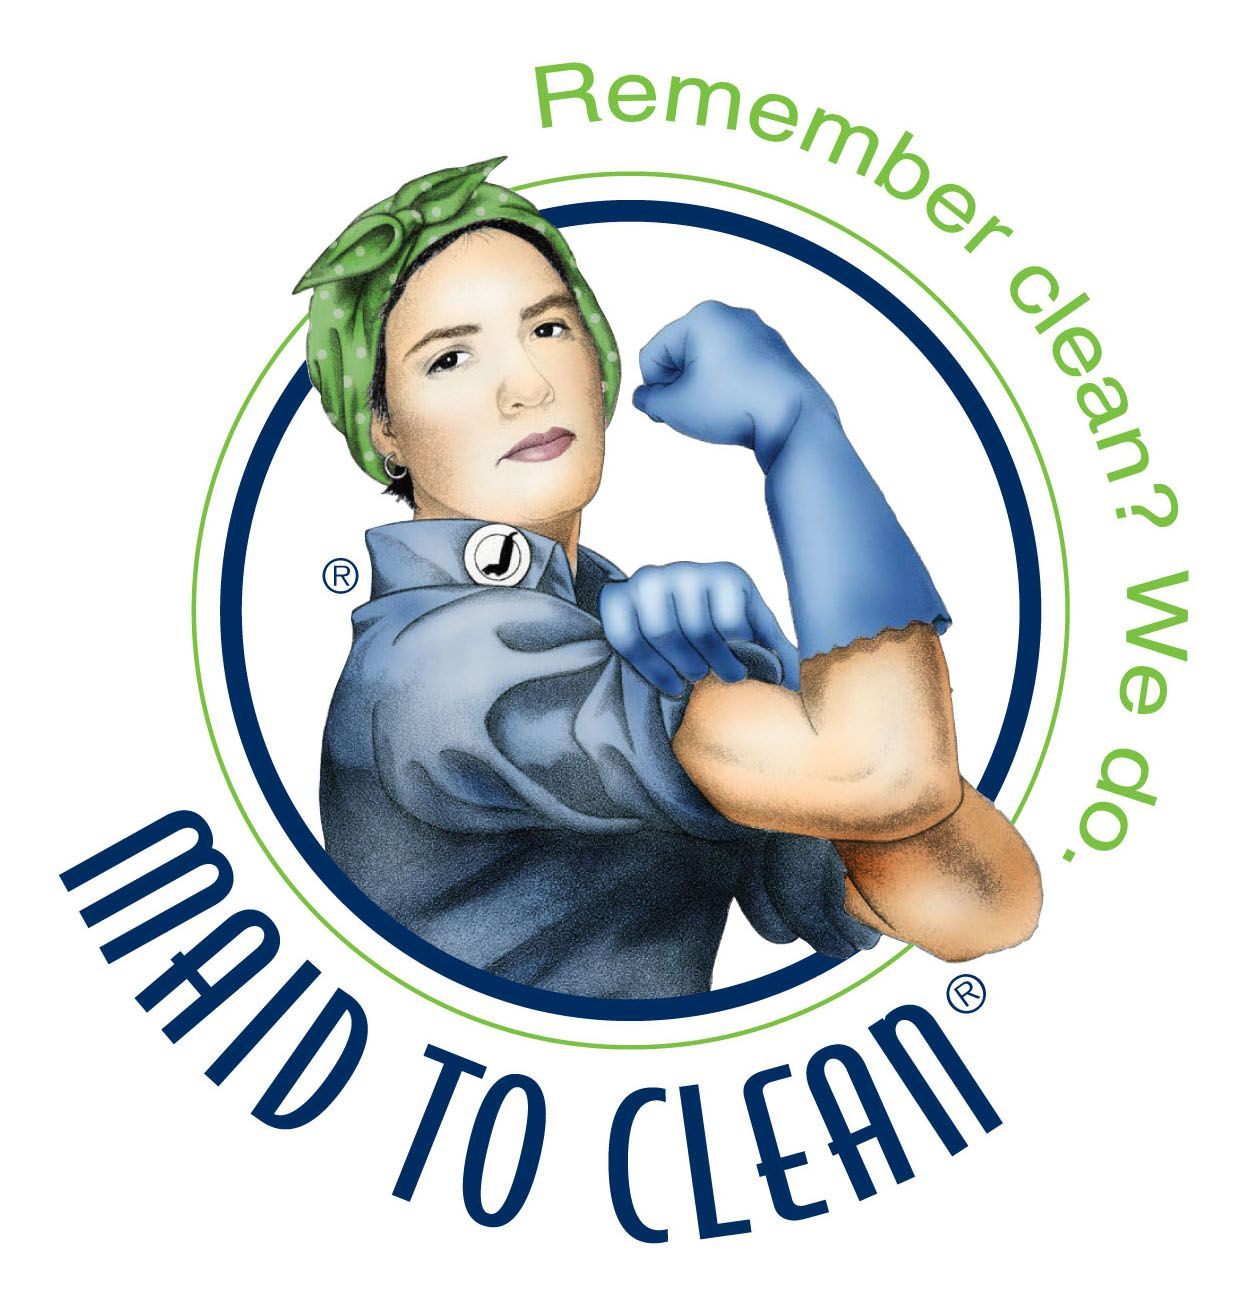 house cleaning business cards cleaning business business cards about maid to clean®